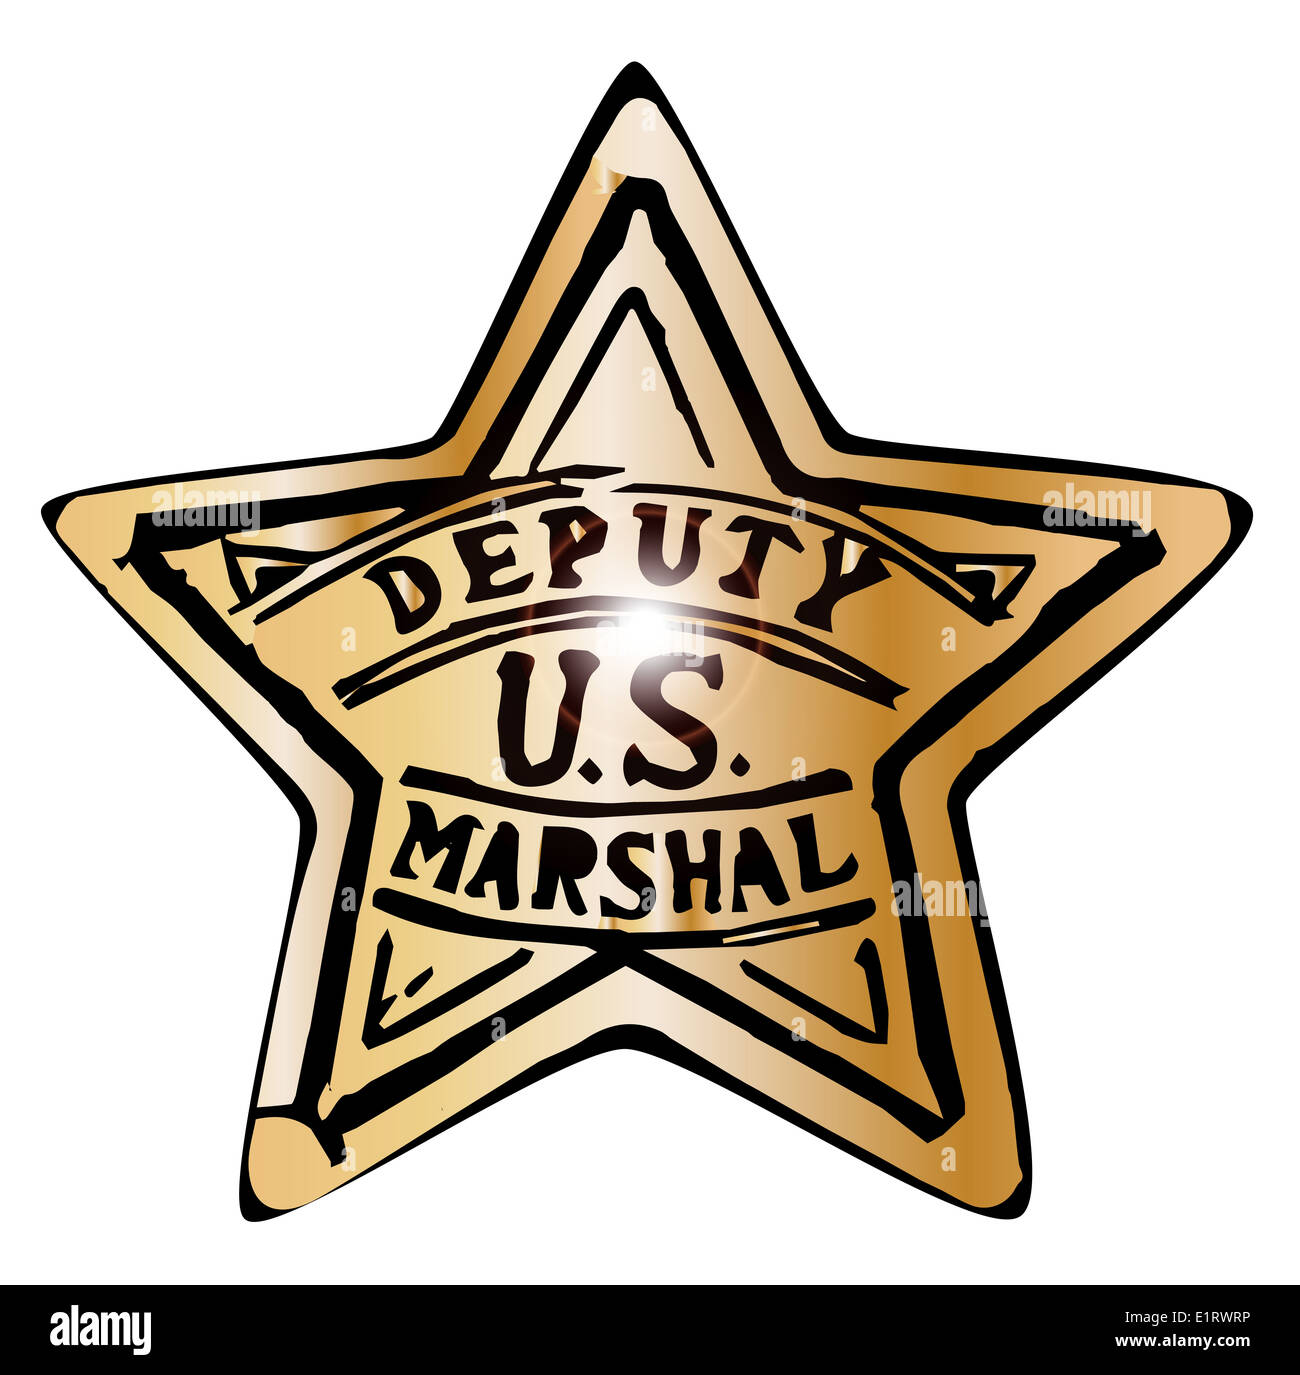 Us Marshal Stock Photos & Us Marshal Stock Images - Alamy